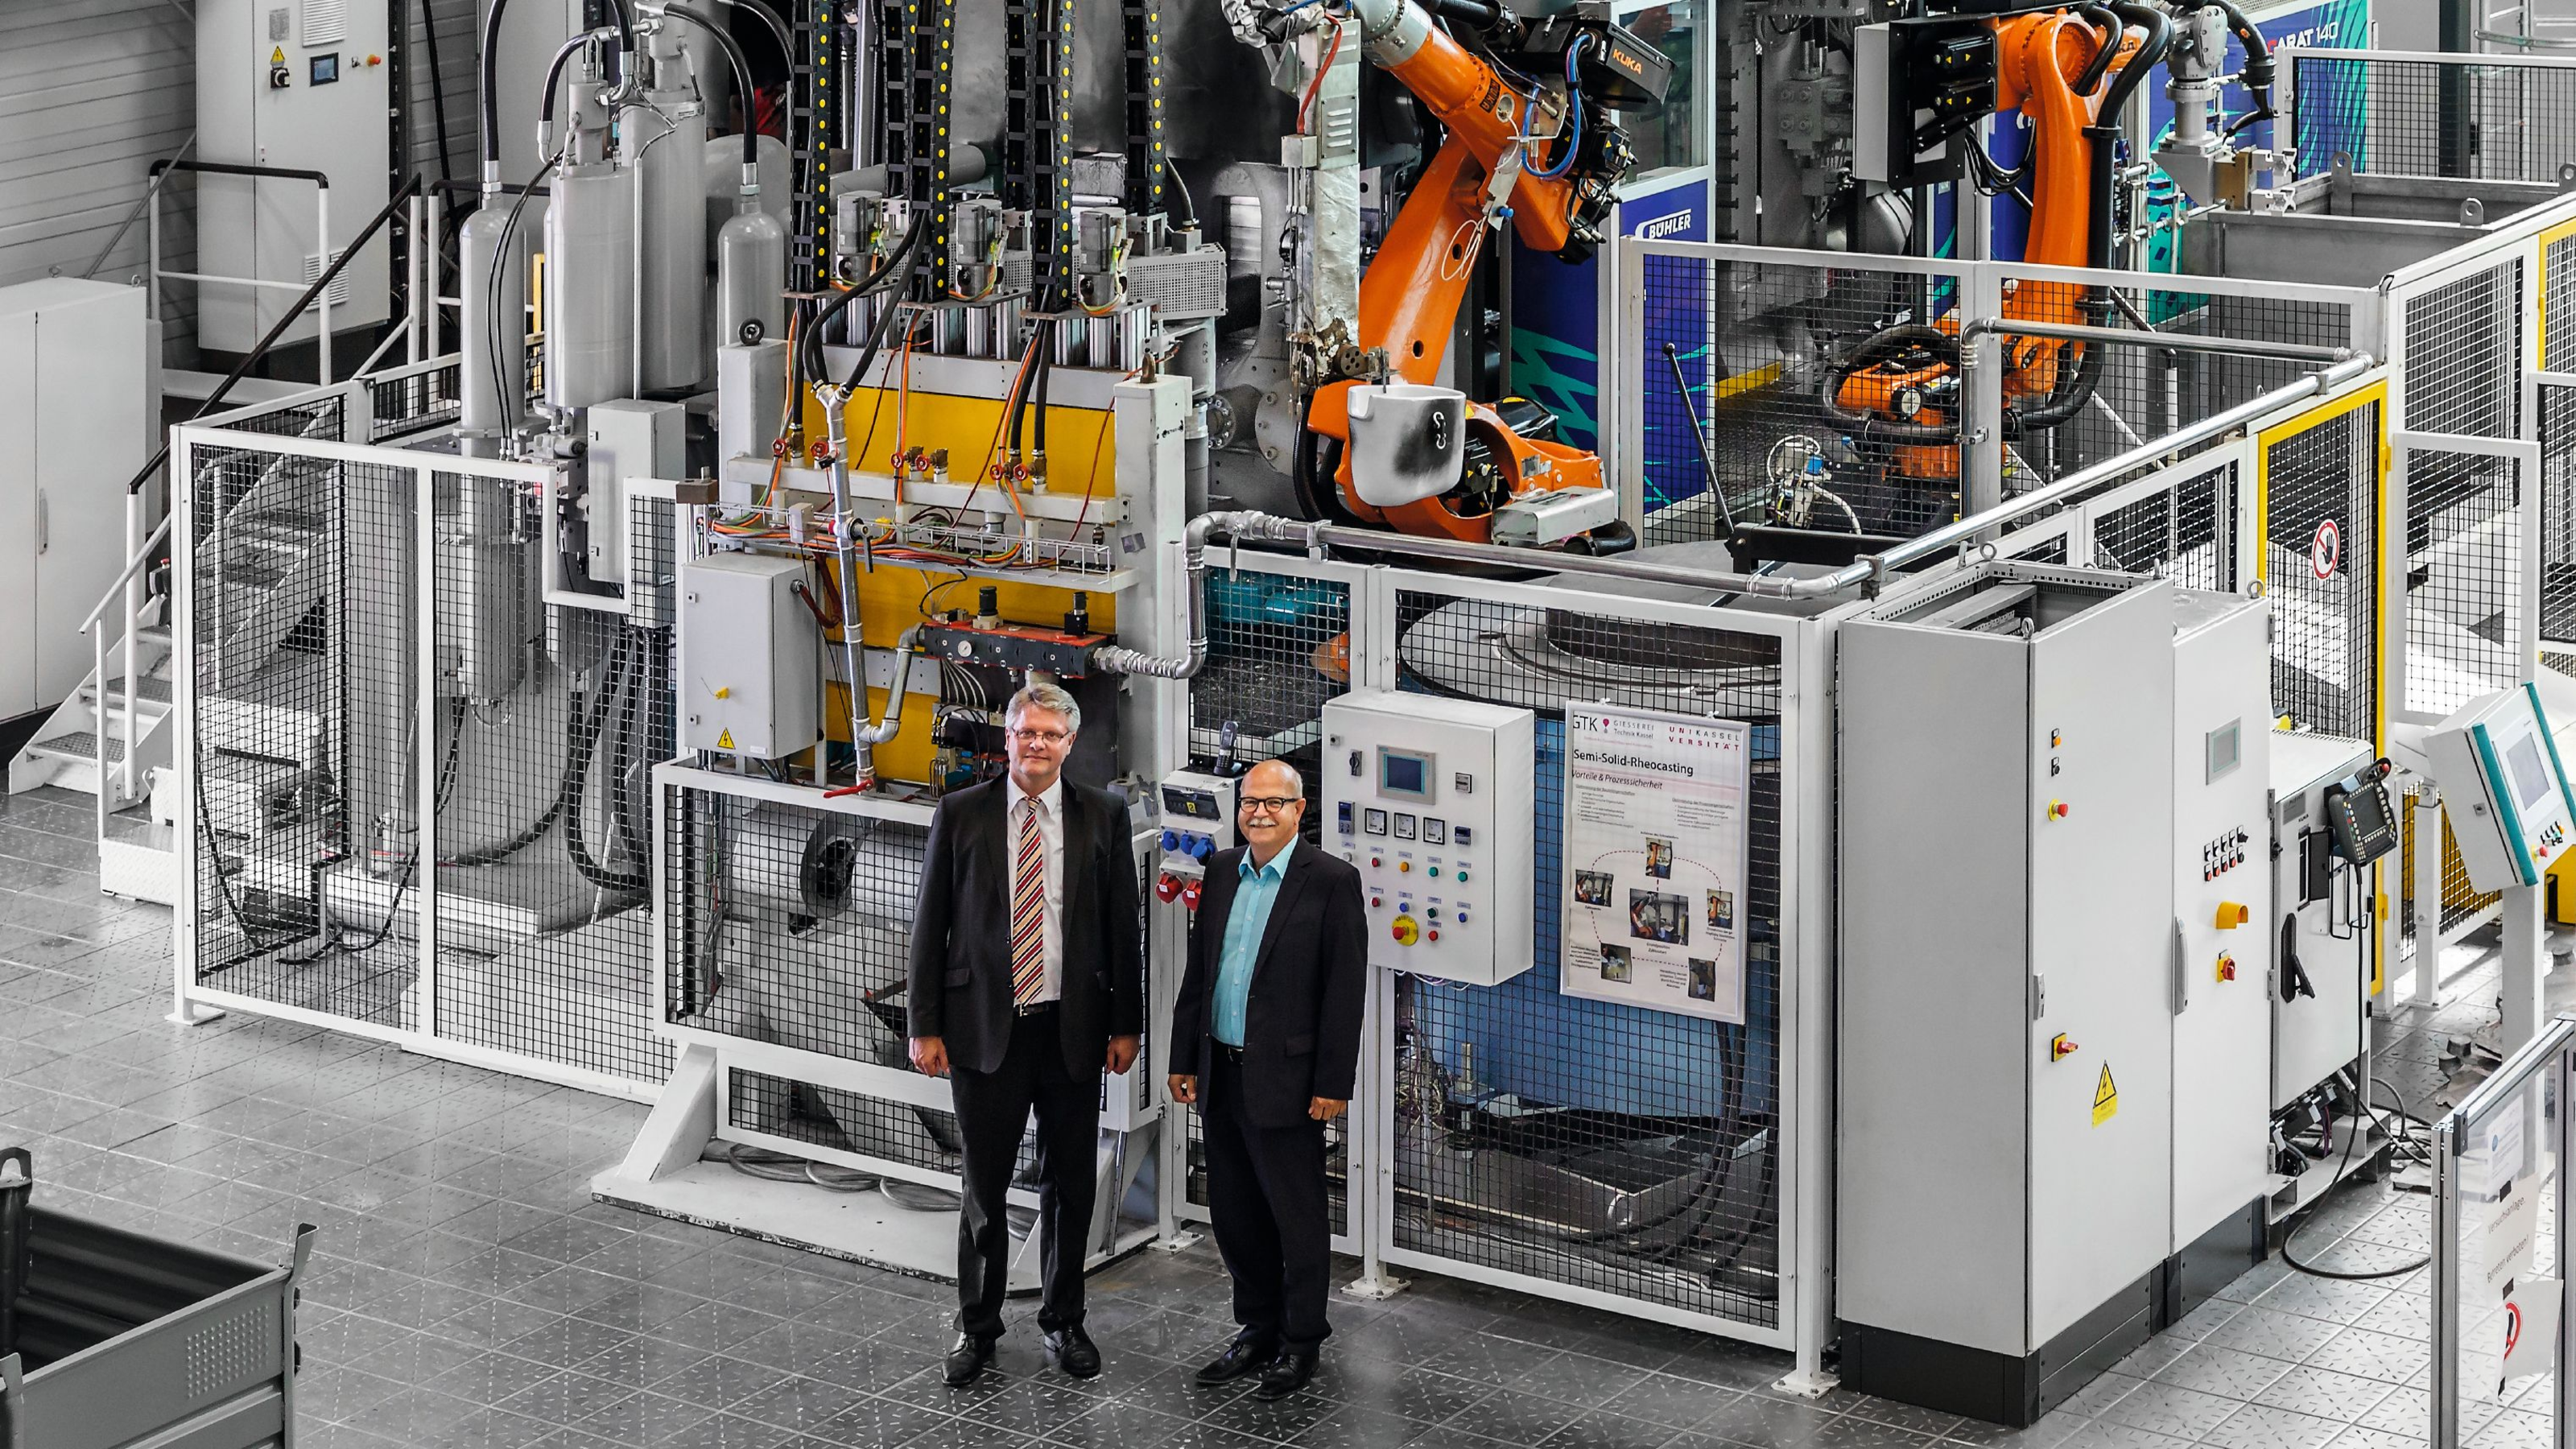 Professor Martin Fehlbier and Hartmut Schmidt are standing in front of the Carat die casting cell.